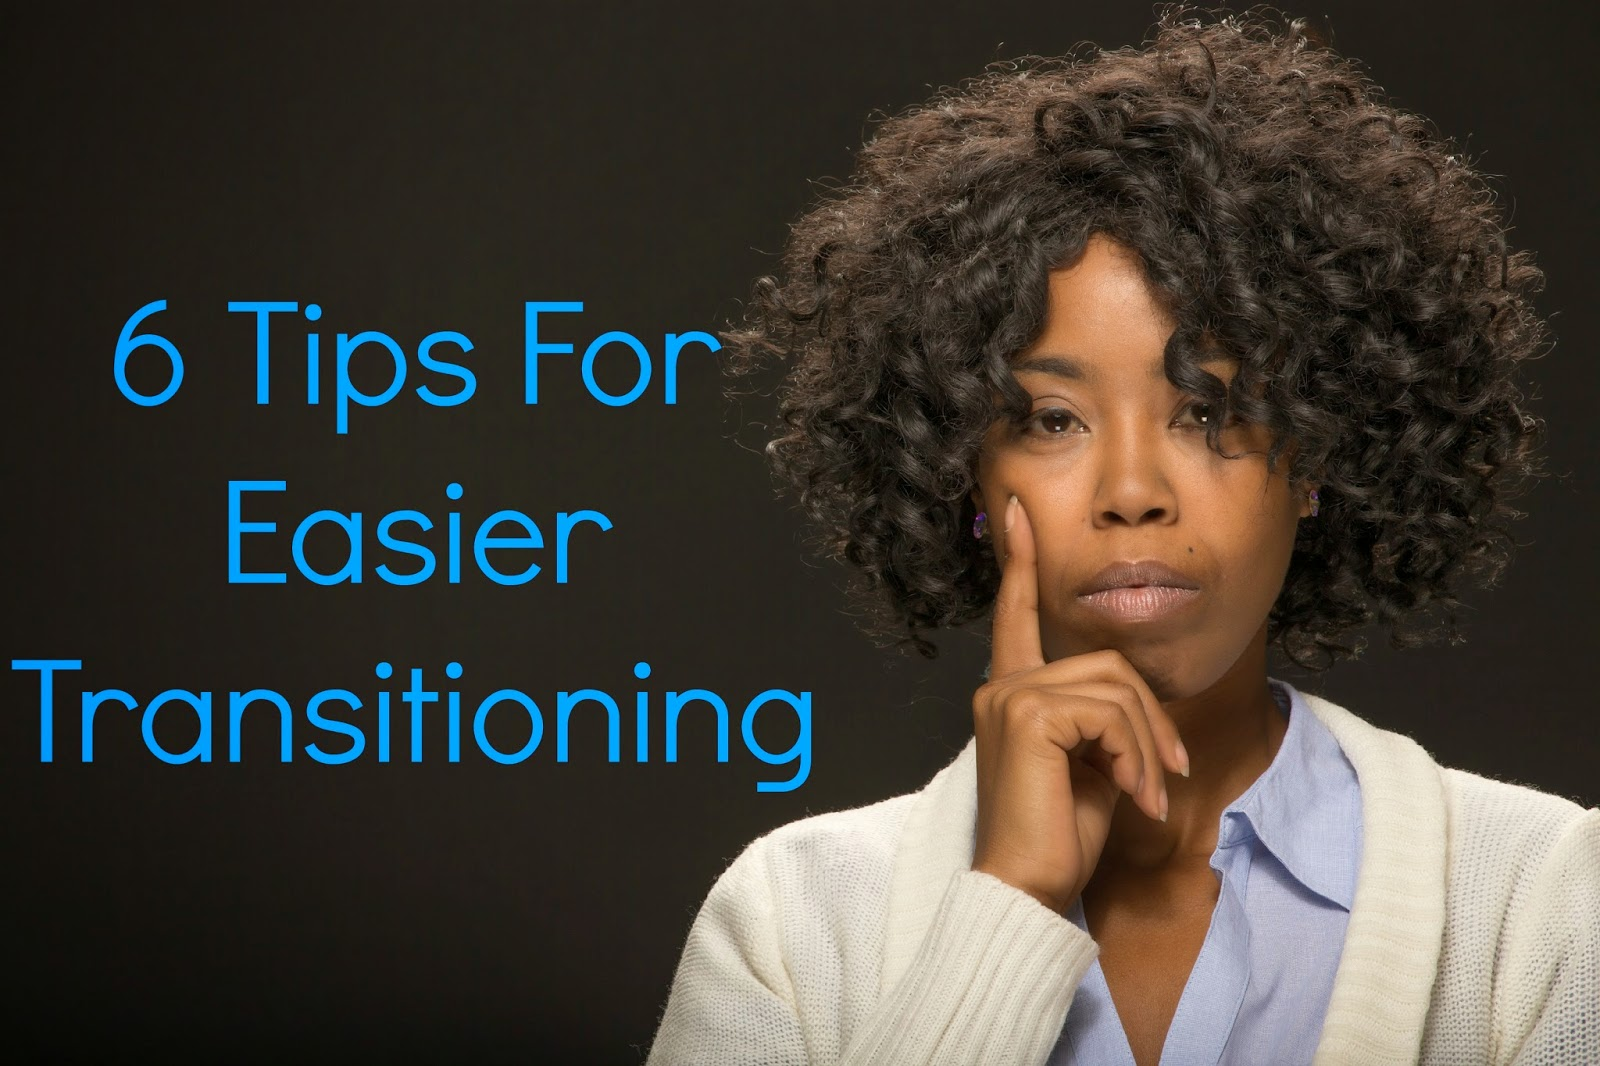 6 Tips For Easier Transitioning